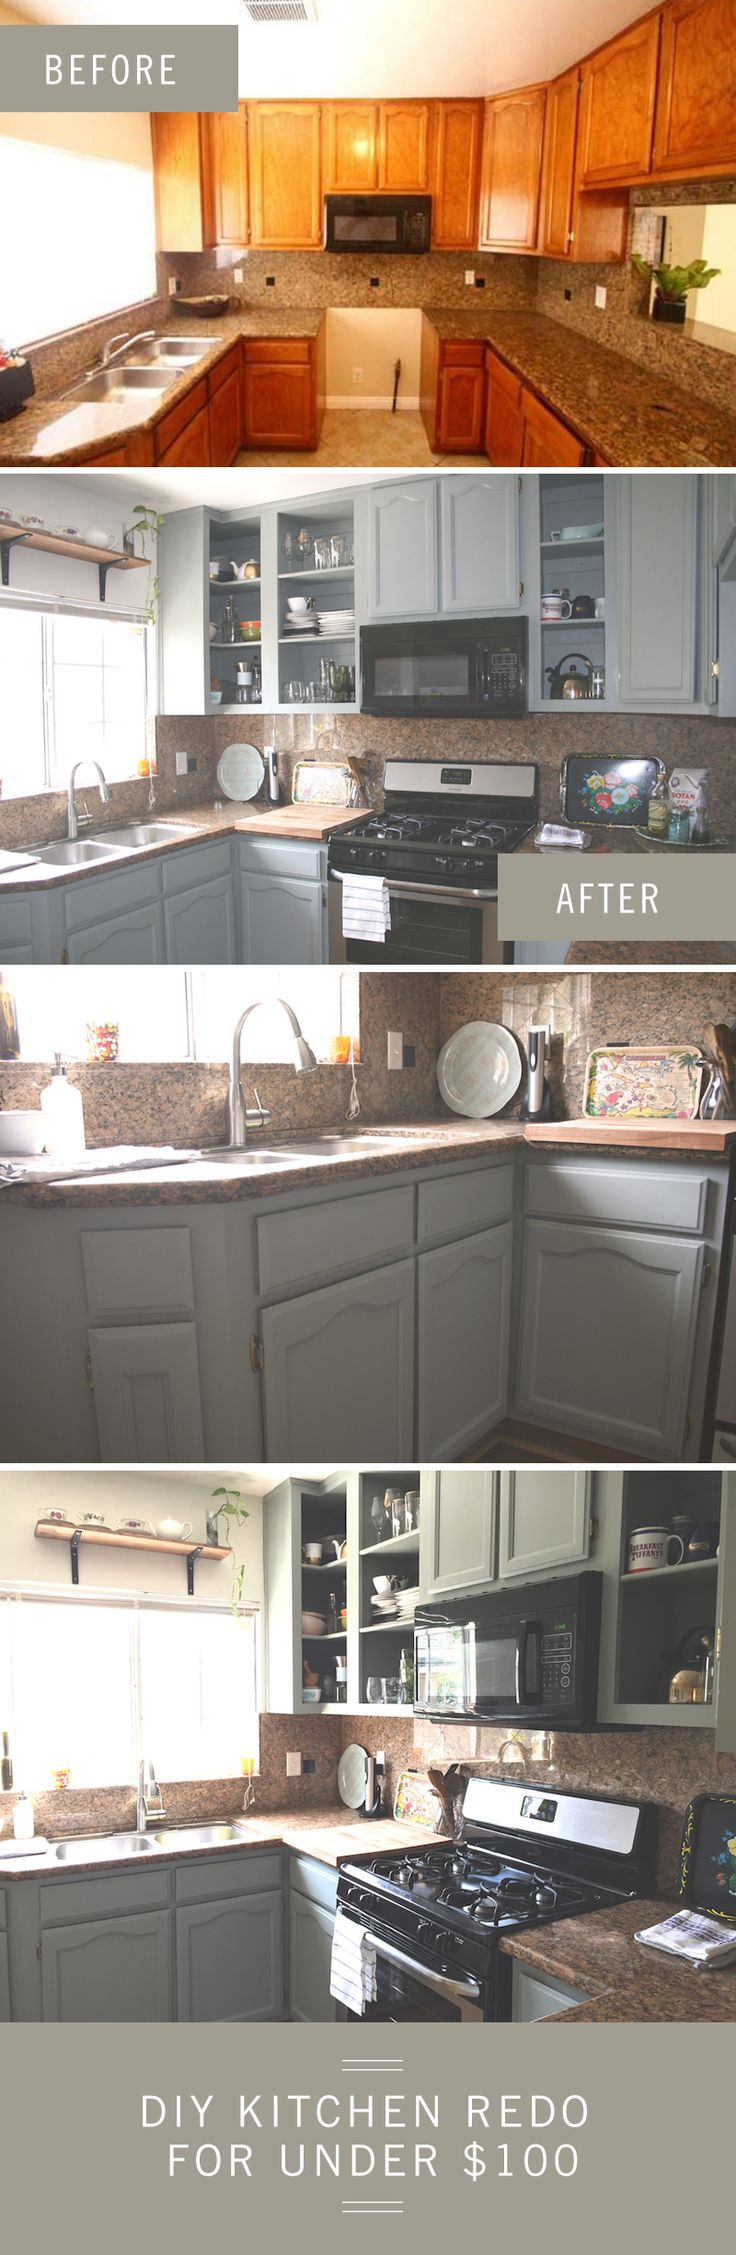 best 20 painting cupboards ideas on pinterest painting cabinets kitchen makeover under 100